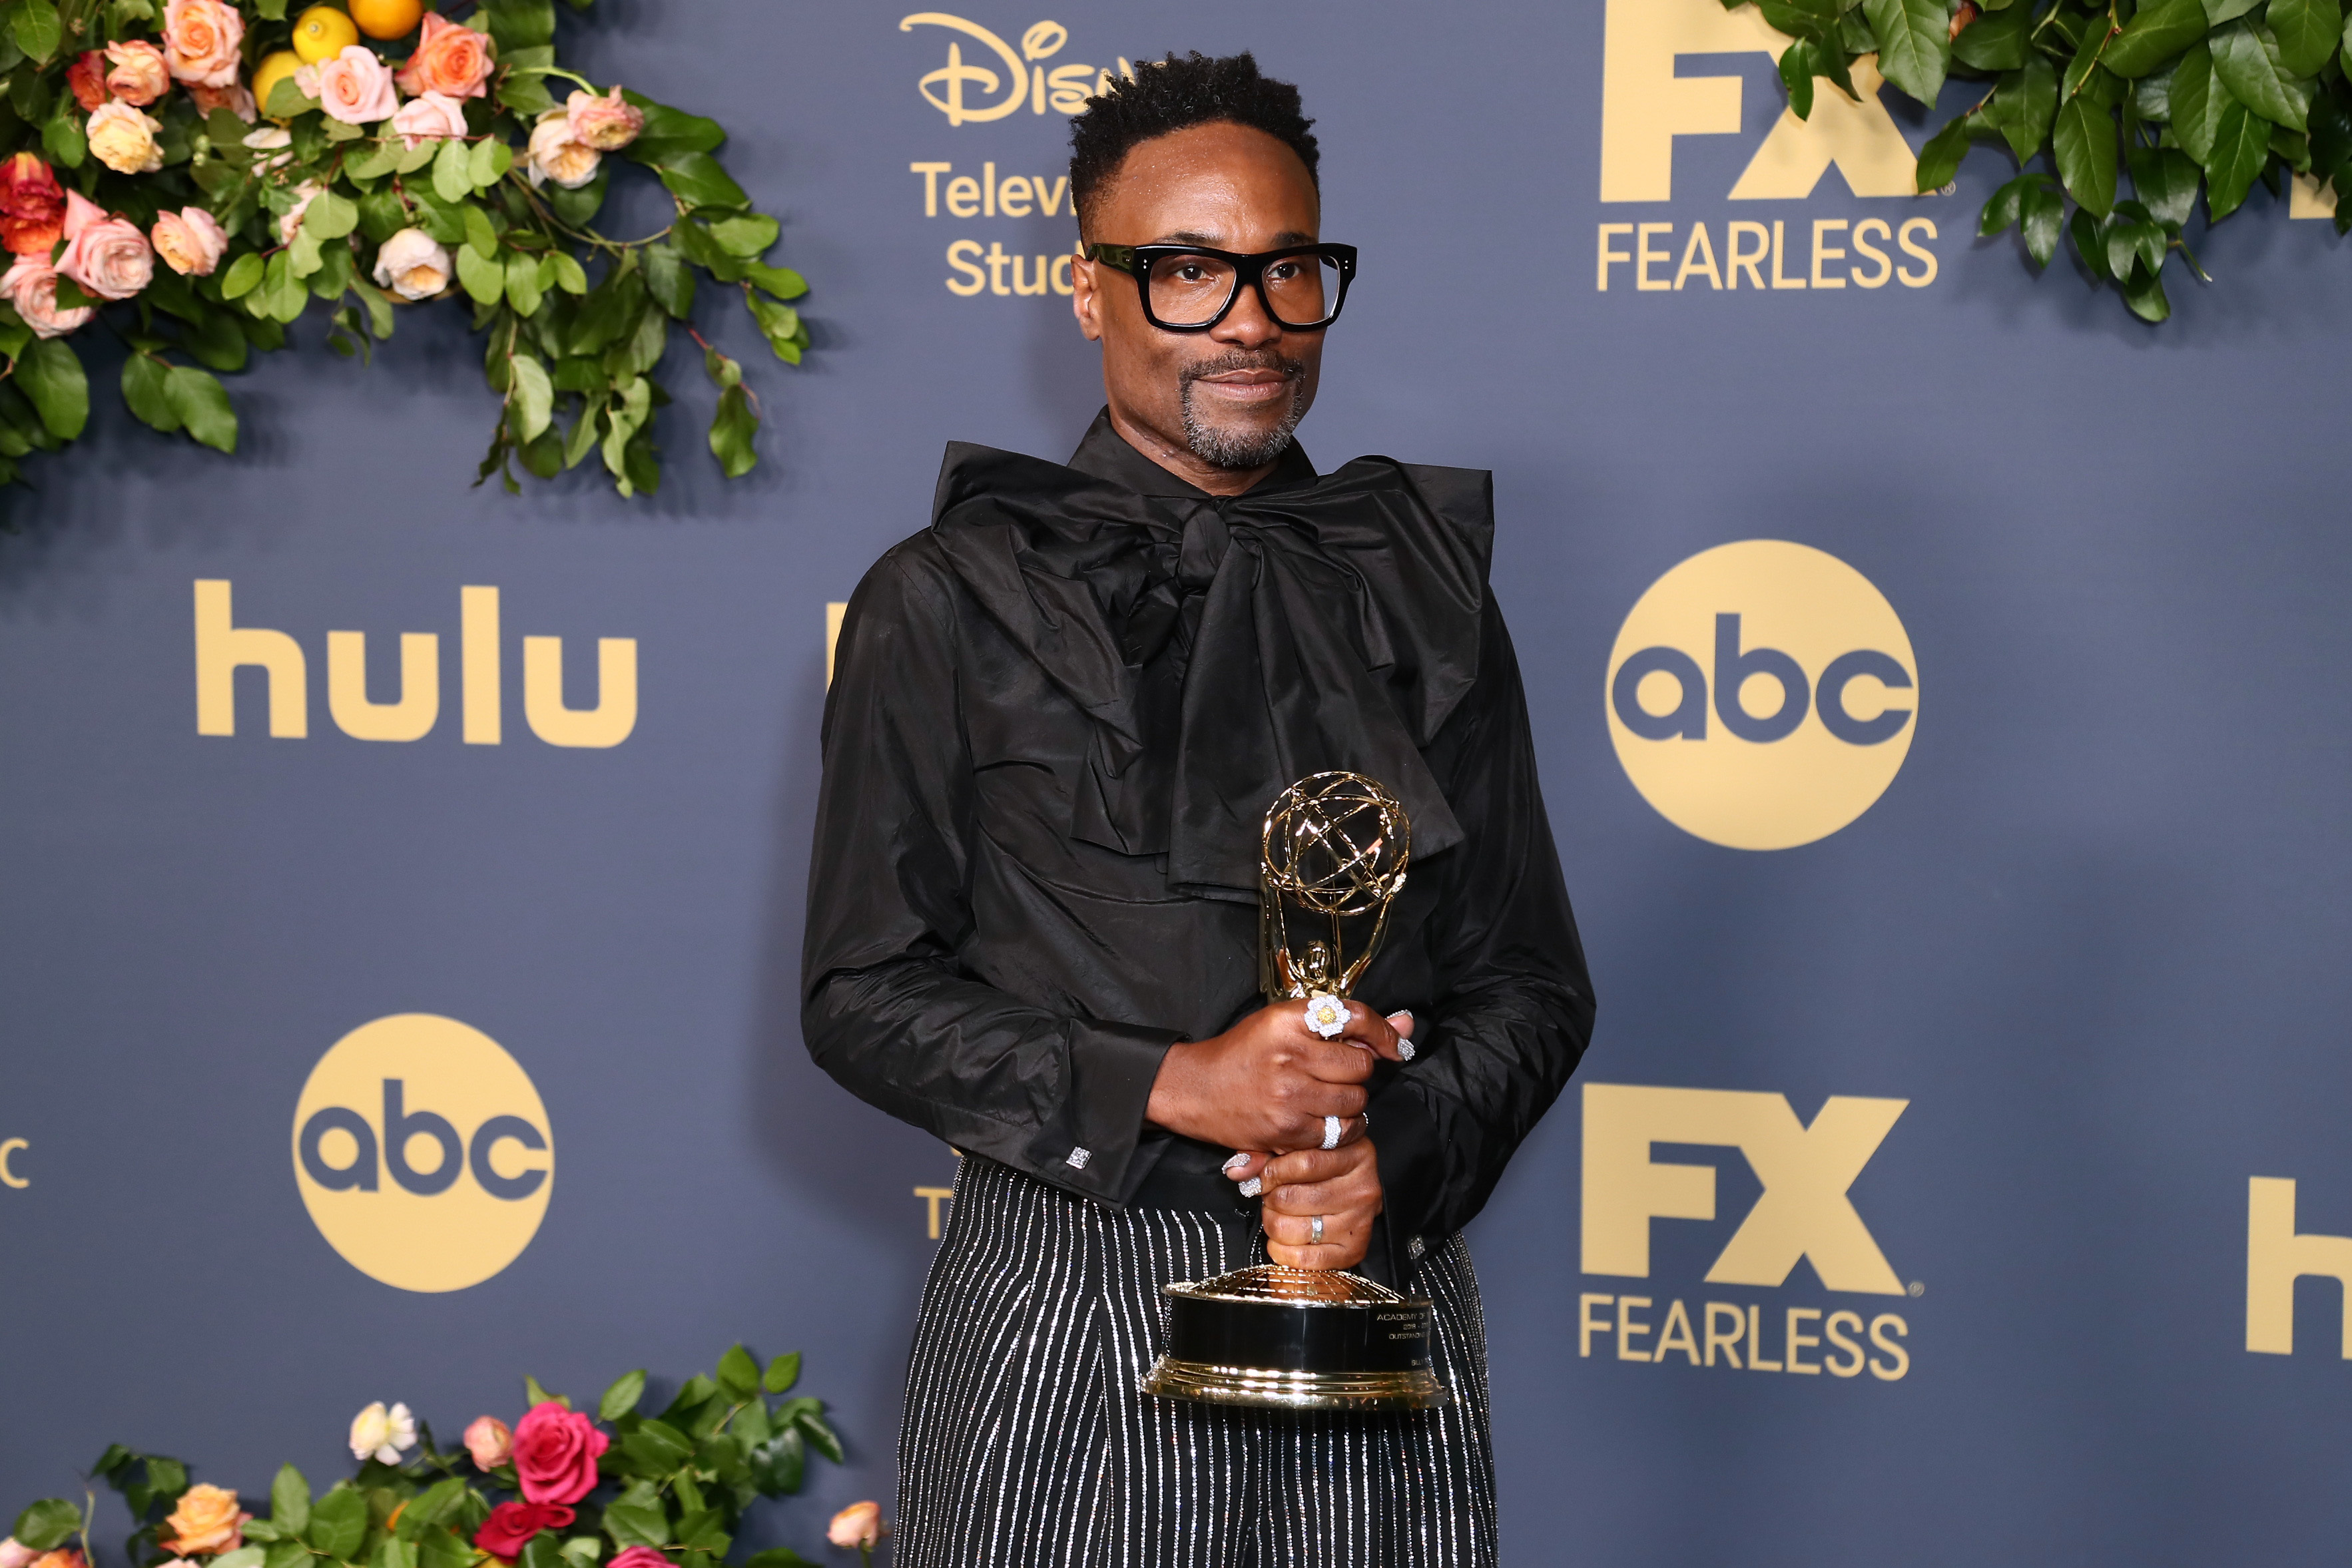 Westlake Legal Group GettyImages-1176500175 Billy Porter may join 'Cinderella' as the Fairy Godmother: report Variety fox-news/entertainment/movies fox-news/entertainment/genres/musicals fox-news/entertainment fnc/entertainment fnc Dave McNary article 0029437b-554a-5323-98fc-5a8e47a7054d